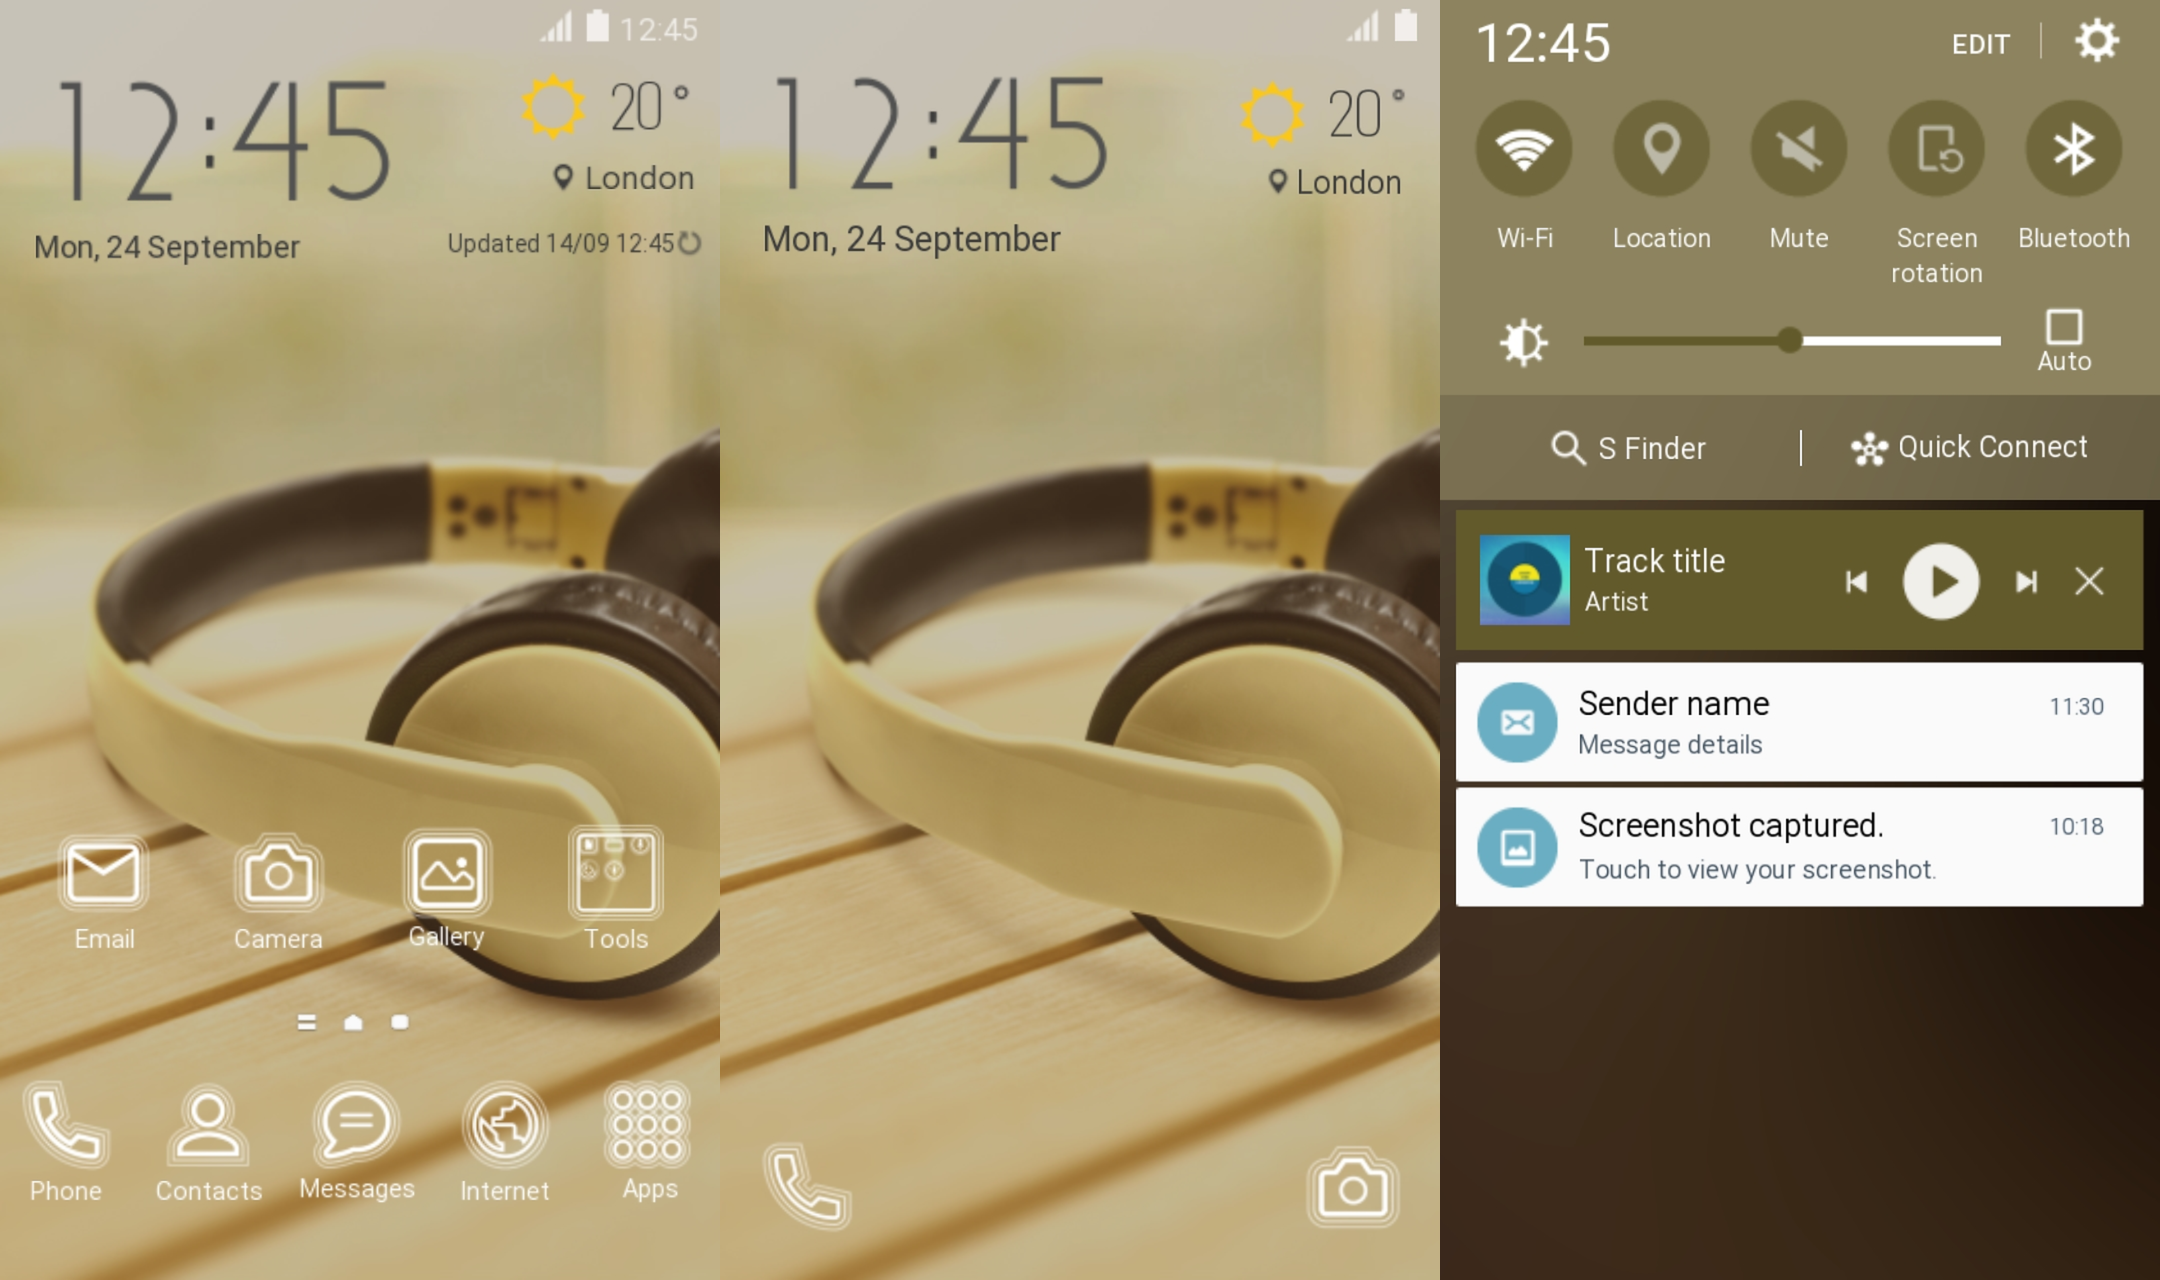 Themes Thursday: Ten new themes launched in the Samsung Theme Store